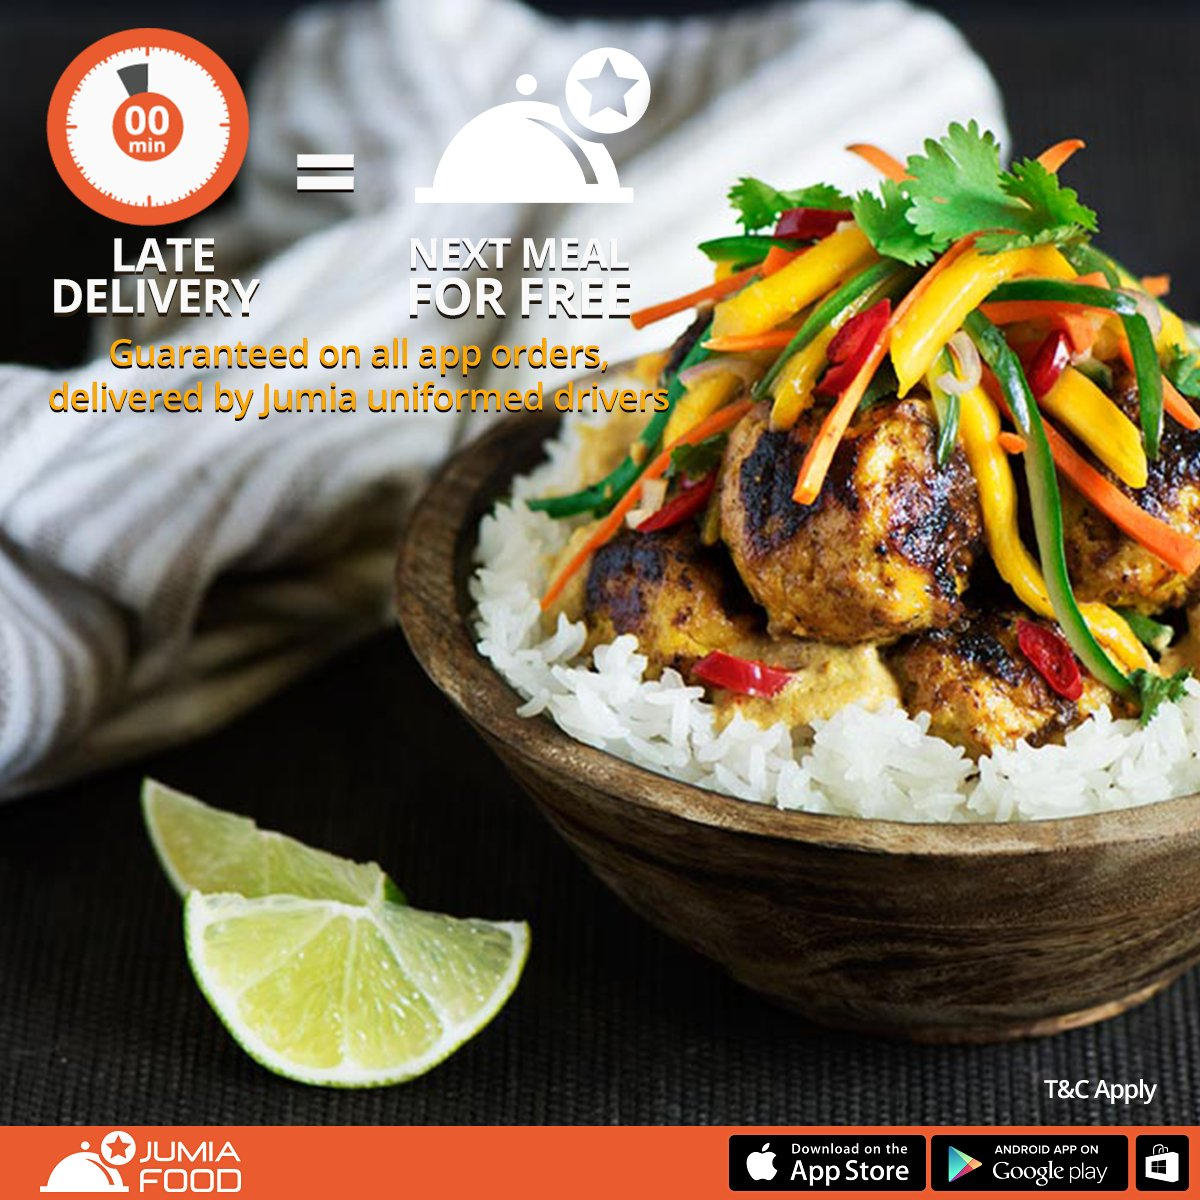 Jumia food nigeria on twitter we value your time late delivery jumia food nigeria on twitter we value your time late delivery free meal voucher on jumia food app orders only t c apply forumfinder Gallery